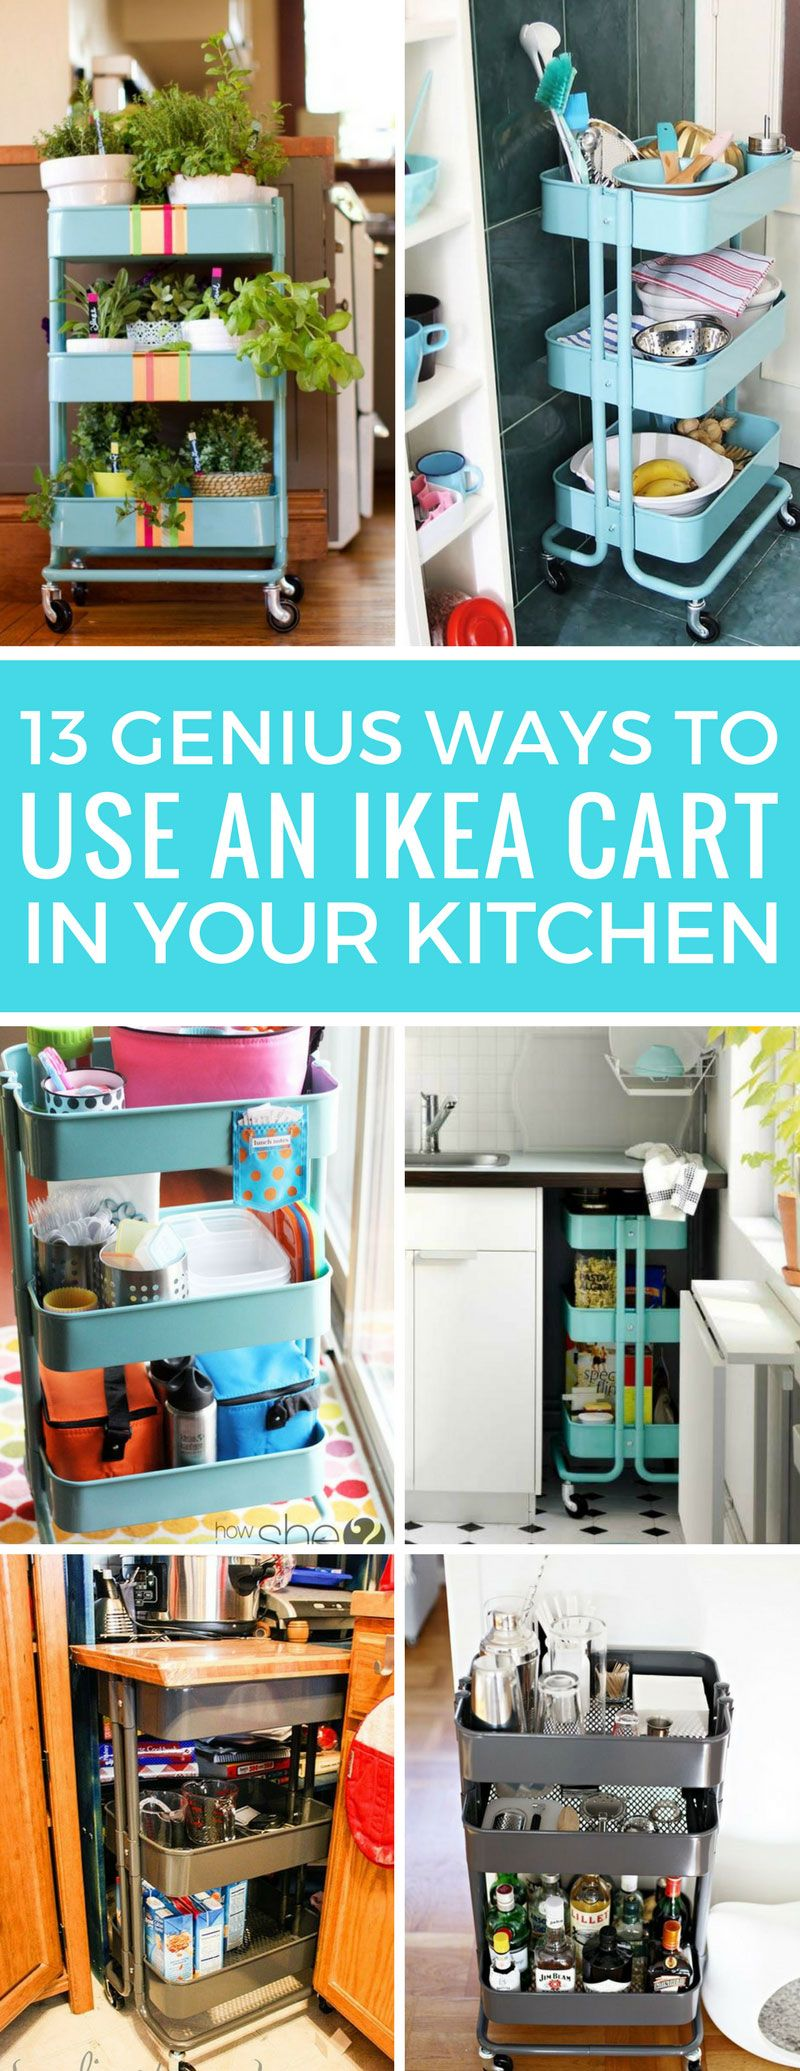 13 Super Clever IKEA Raskog Cart Uses for the Kitchen